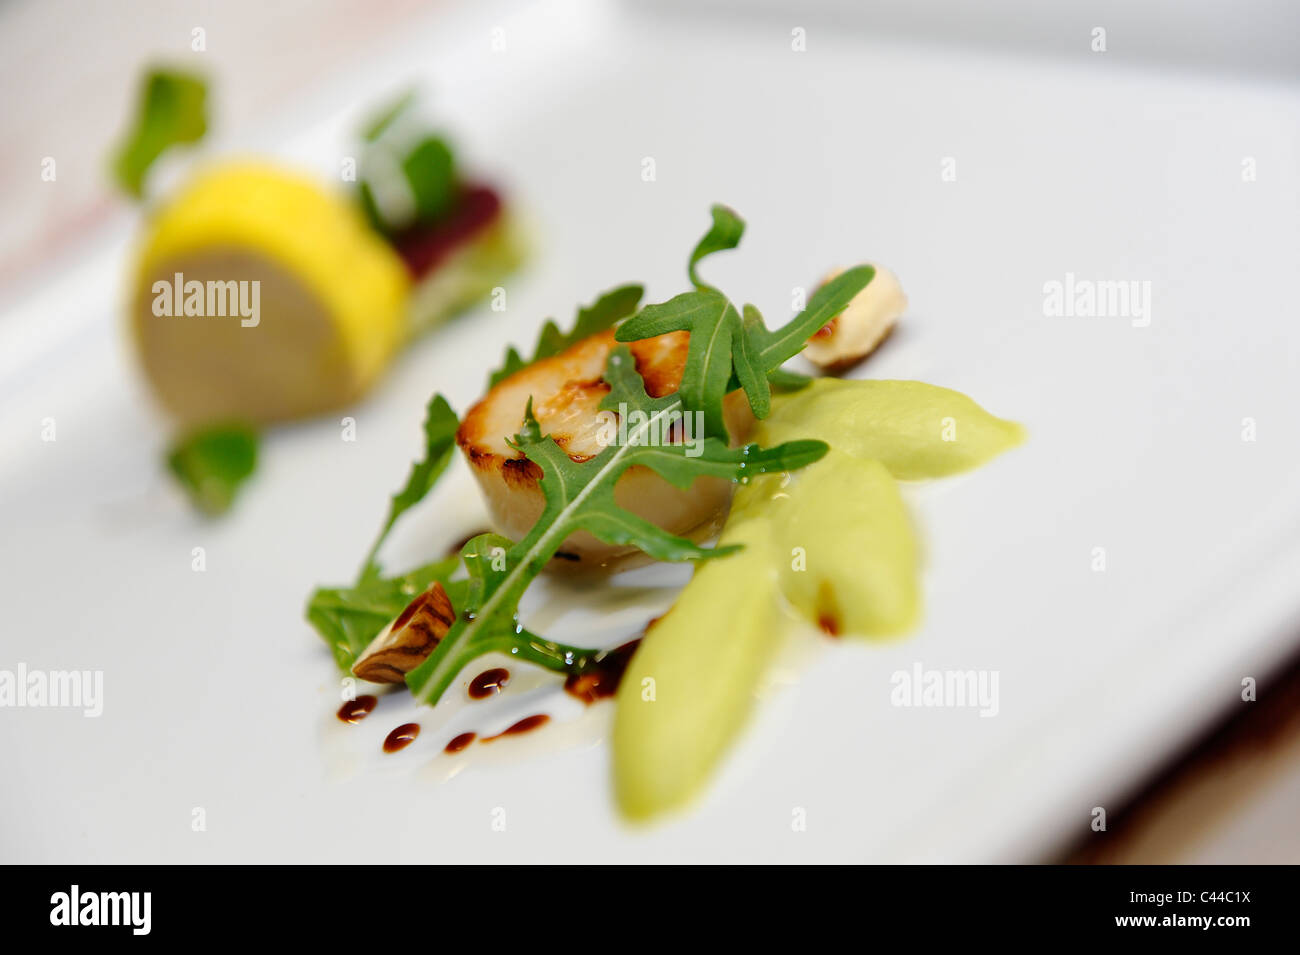 A gastronomic scallop dishes with apples - Stock Image